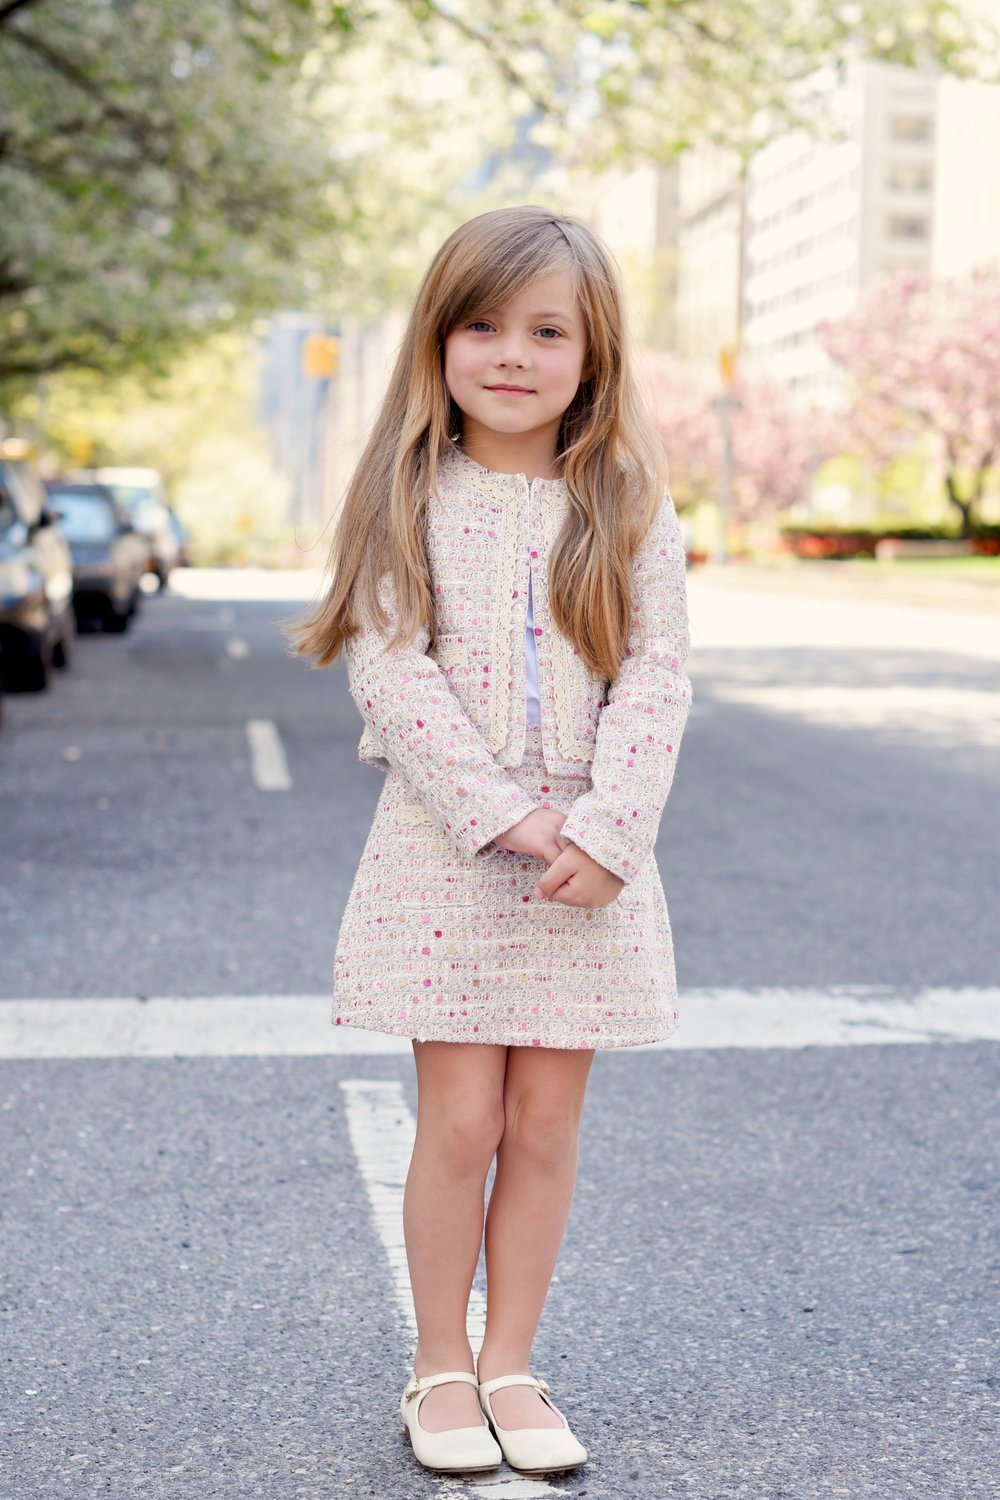 Enfant+Street+Style+by+Gina+Kim+Photography-31.jpeg